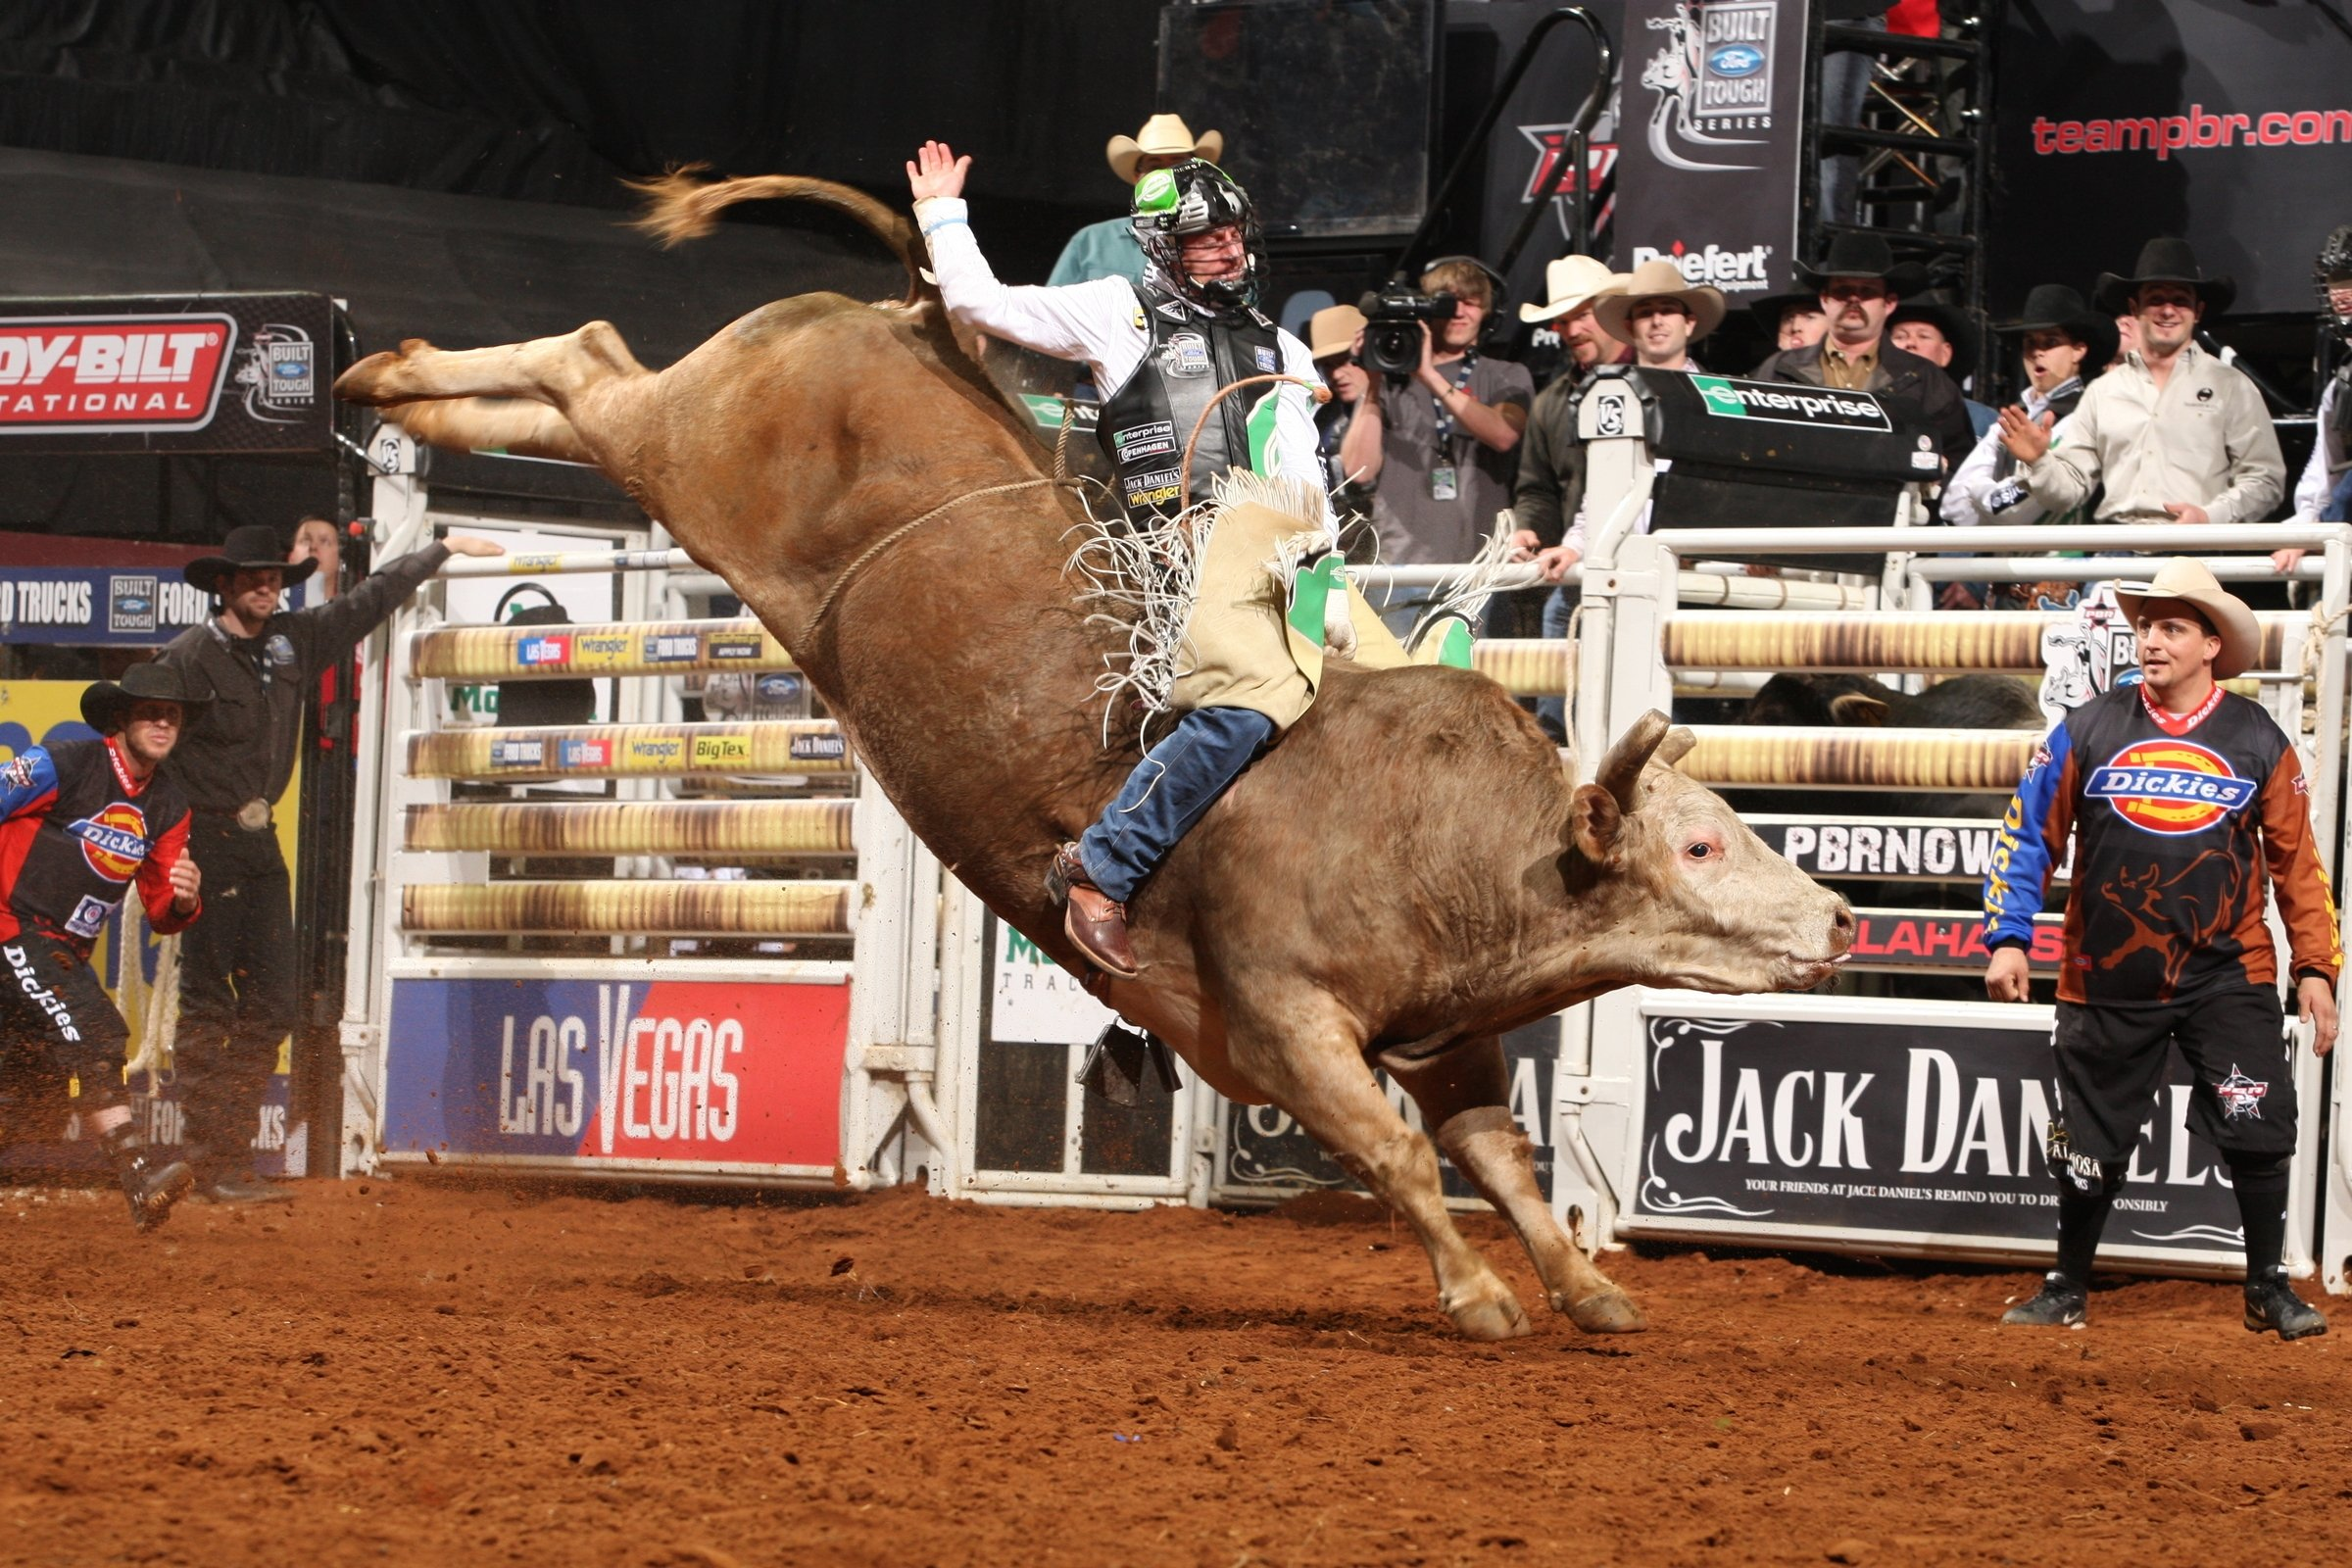 Image Result For Bull Riding Wallpapers New Bull Riding Bullrider Rodeo Western Cowboy Extreme Cow